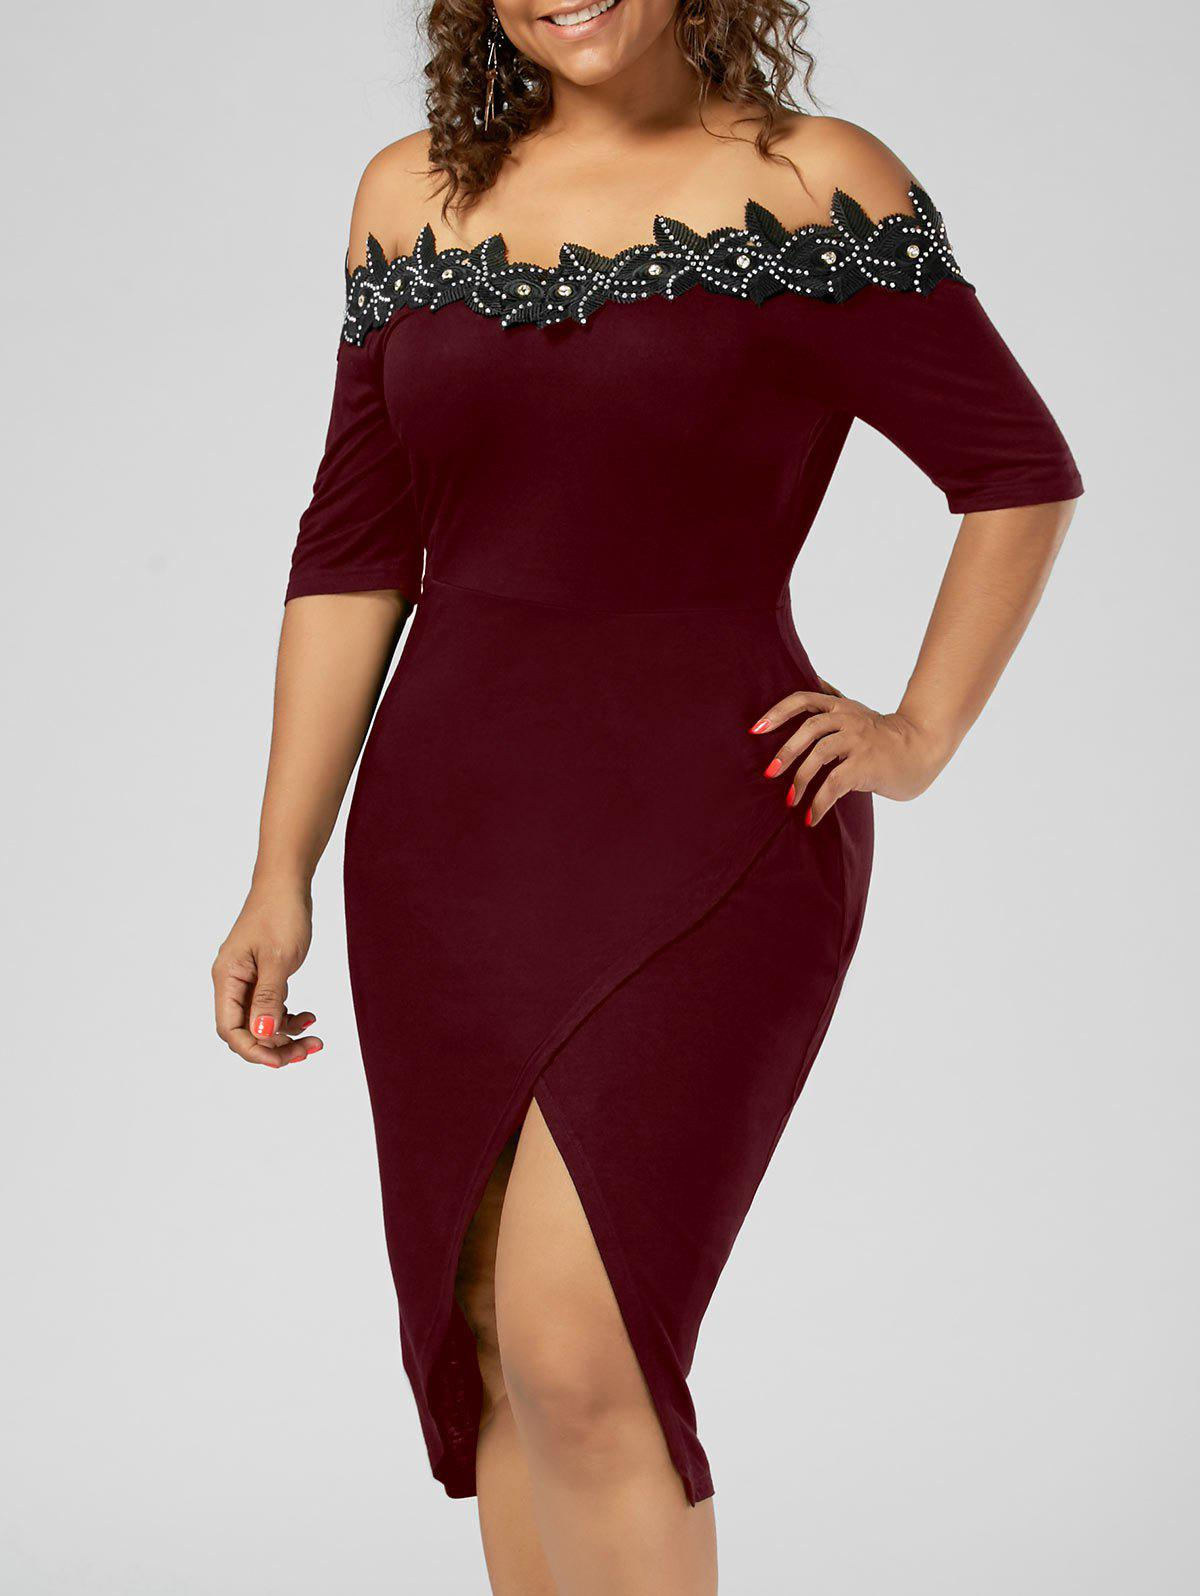 Plus Size Applique Trim Pencil Dress - WINE RED 2XL